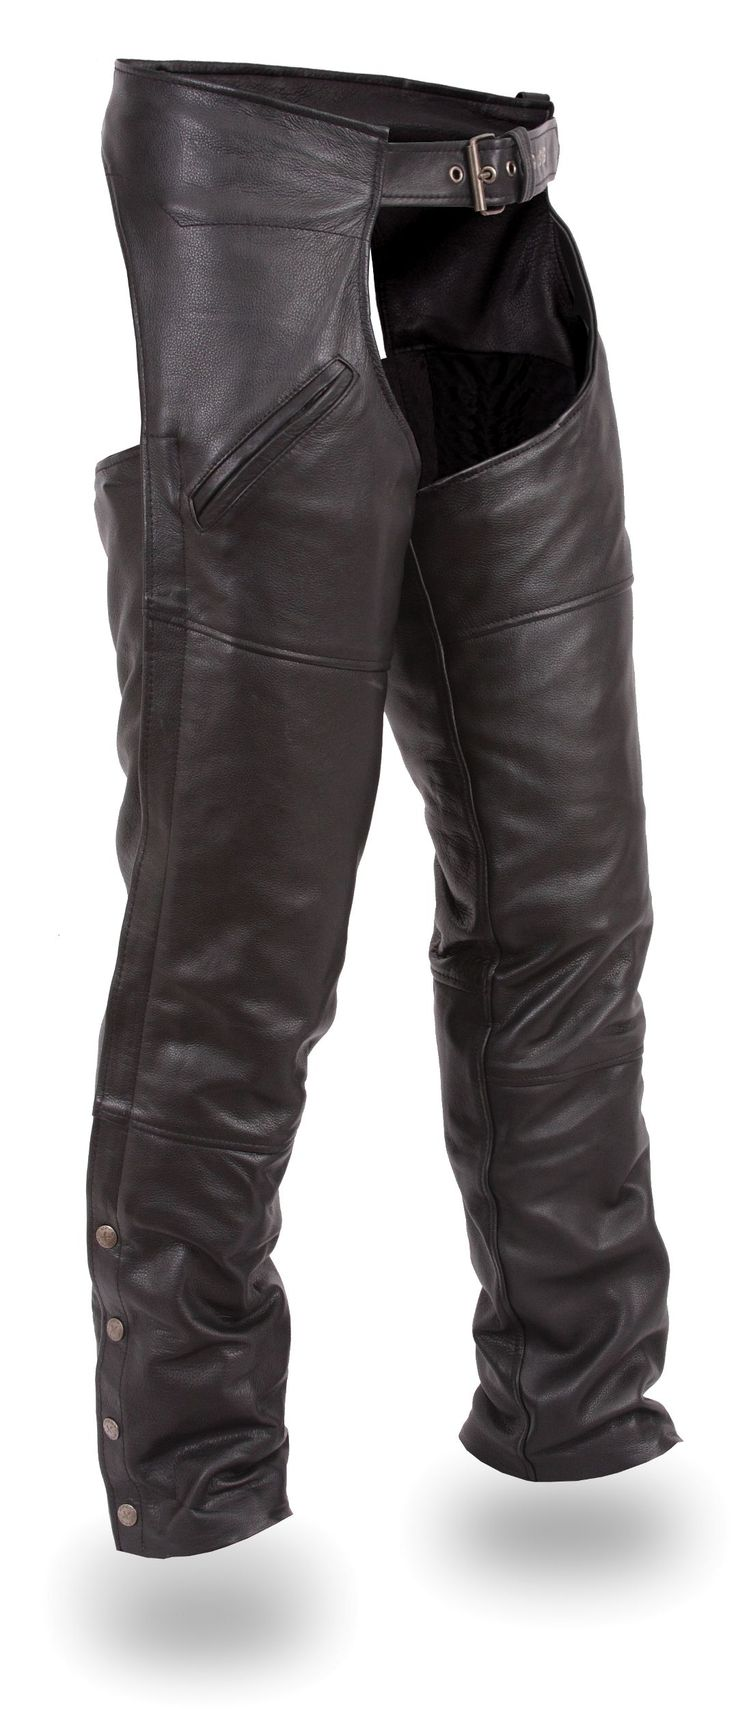 Unisex Premium Thermal Leather Motorcycle Chaps by First Mfg http://www.mymotorcycleclothing.com/